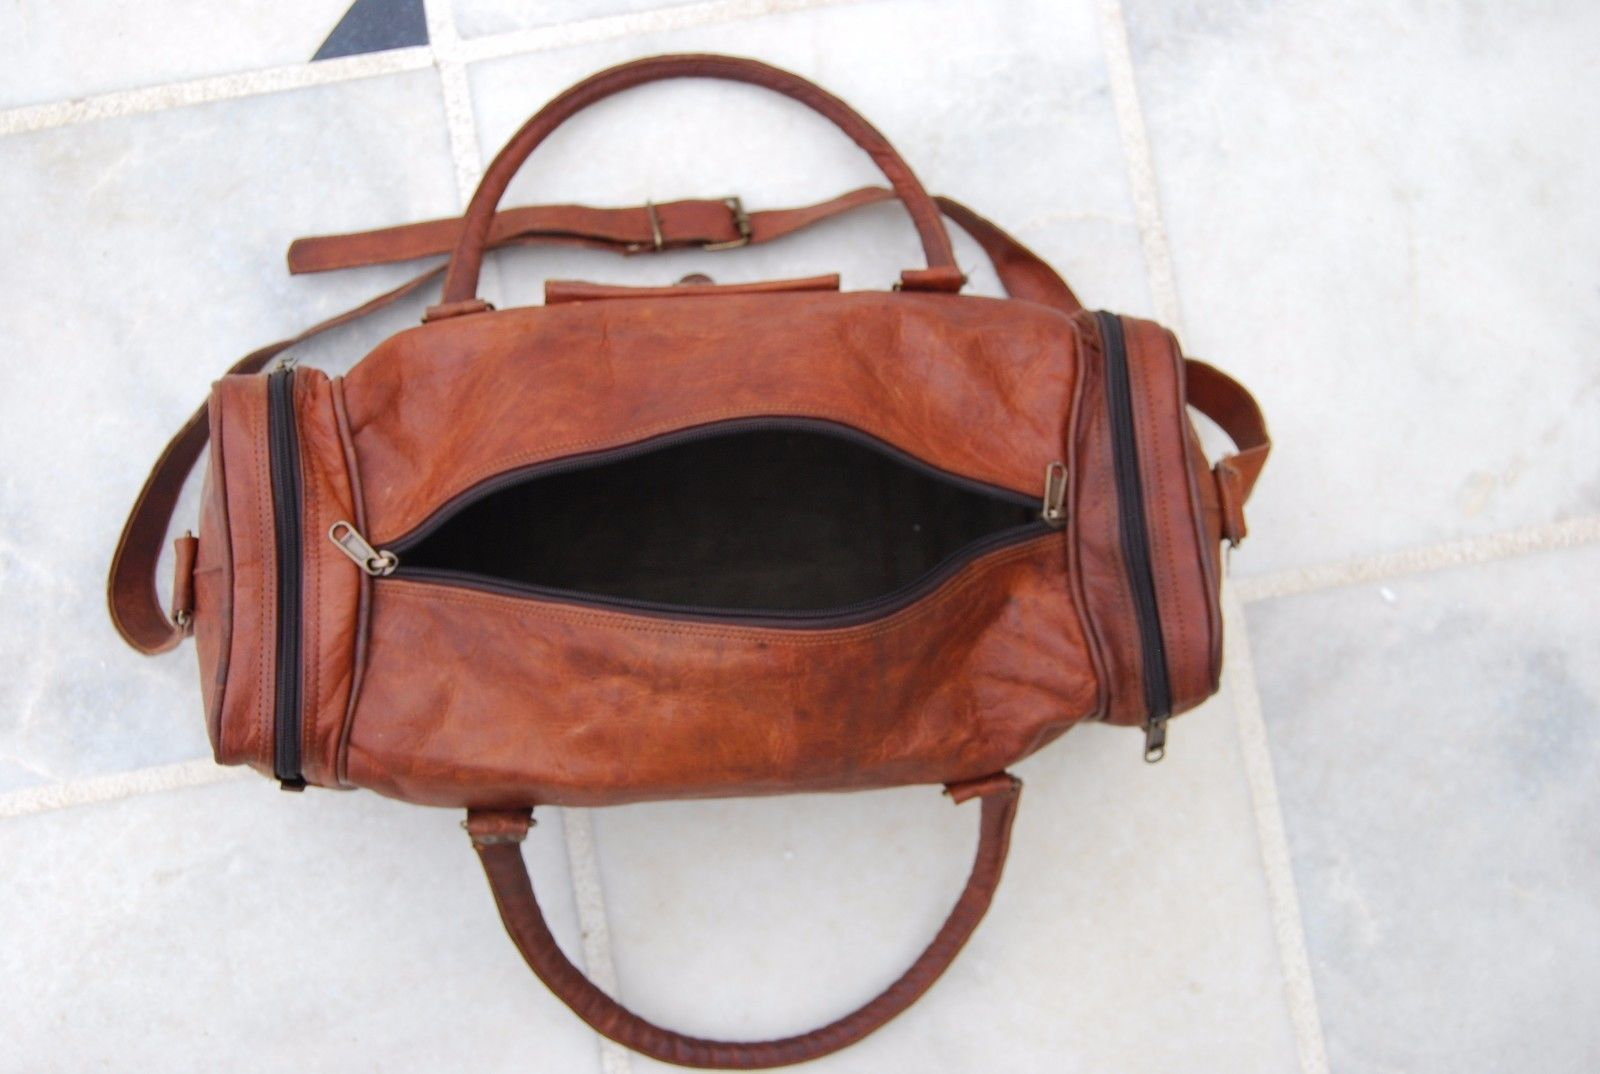 HANDMADE REAL LEATHER DUFFEL BAG WEEKEND GYM OVERNIGHT CANVAS TRAVEL BAGS MENS